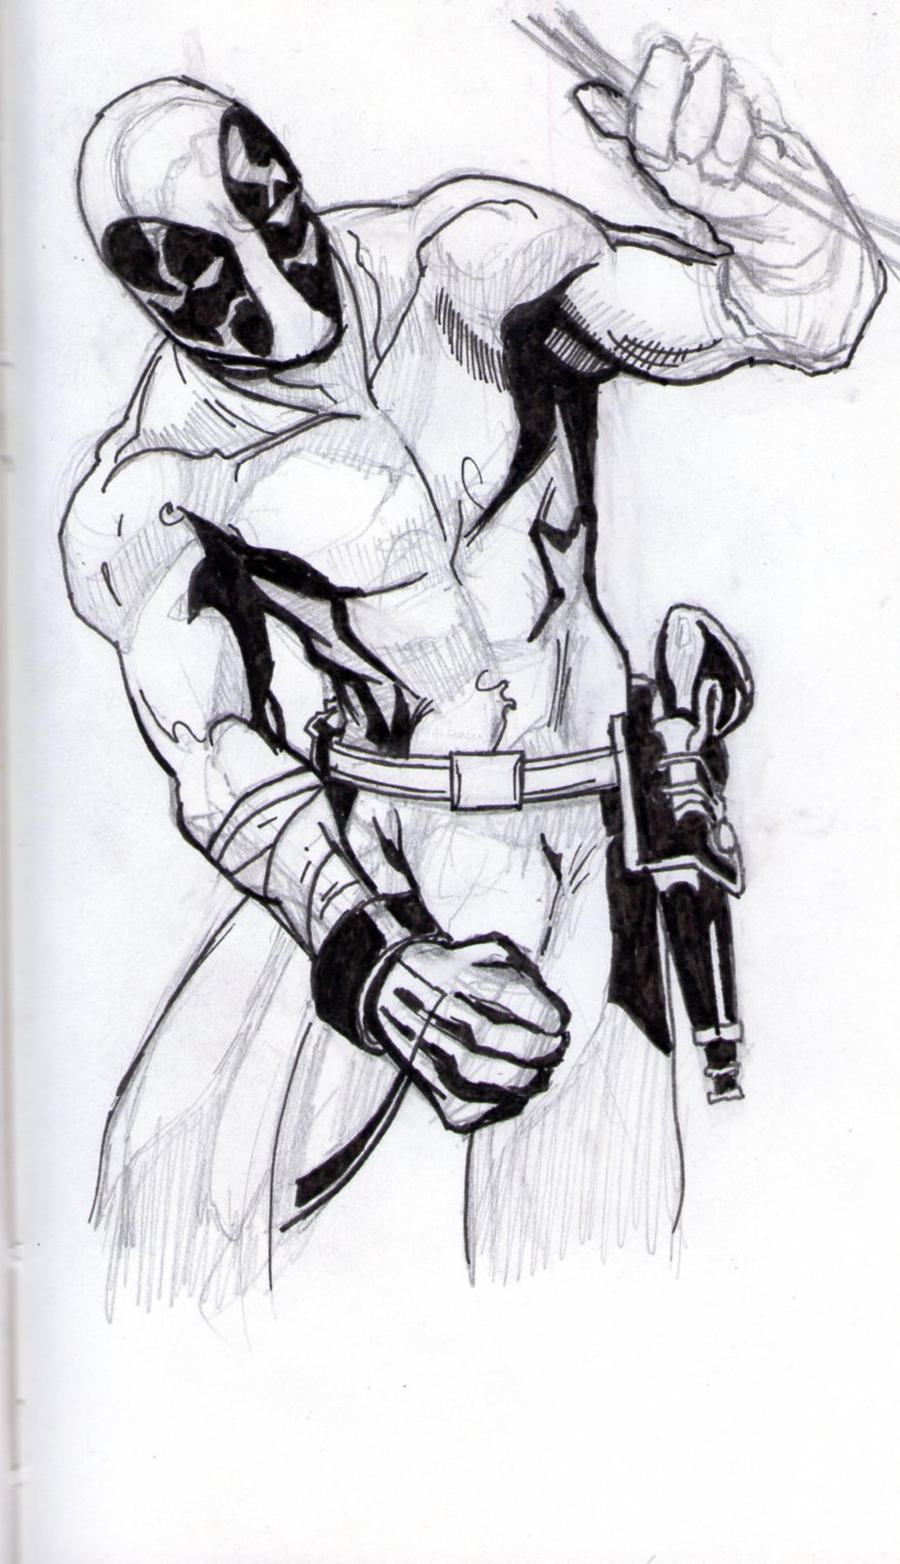 Deadpool Sketch 2 by EllisonIllustrations on DeviantArtDeadpool Sketch